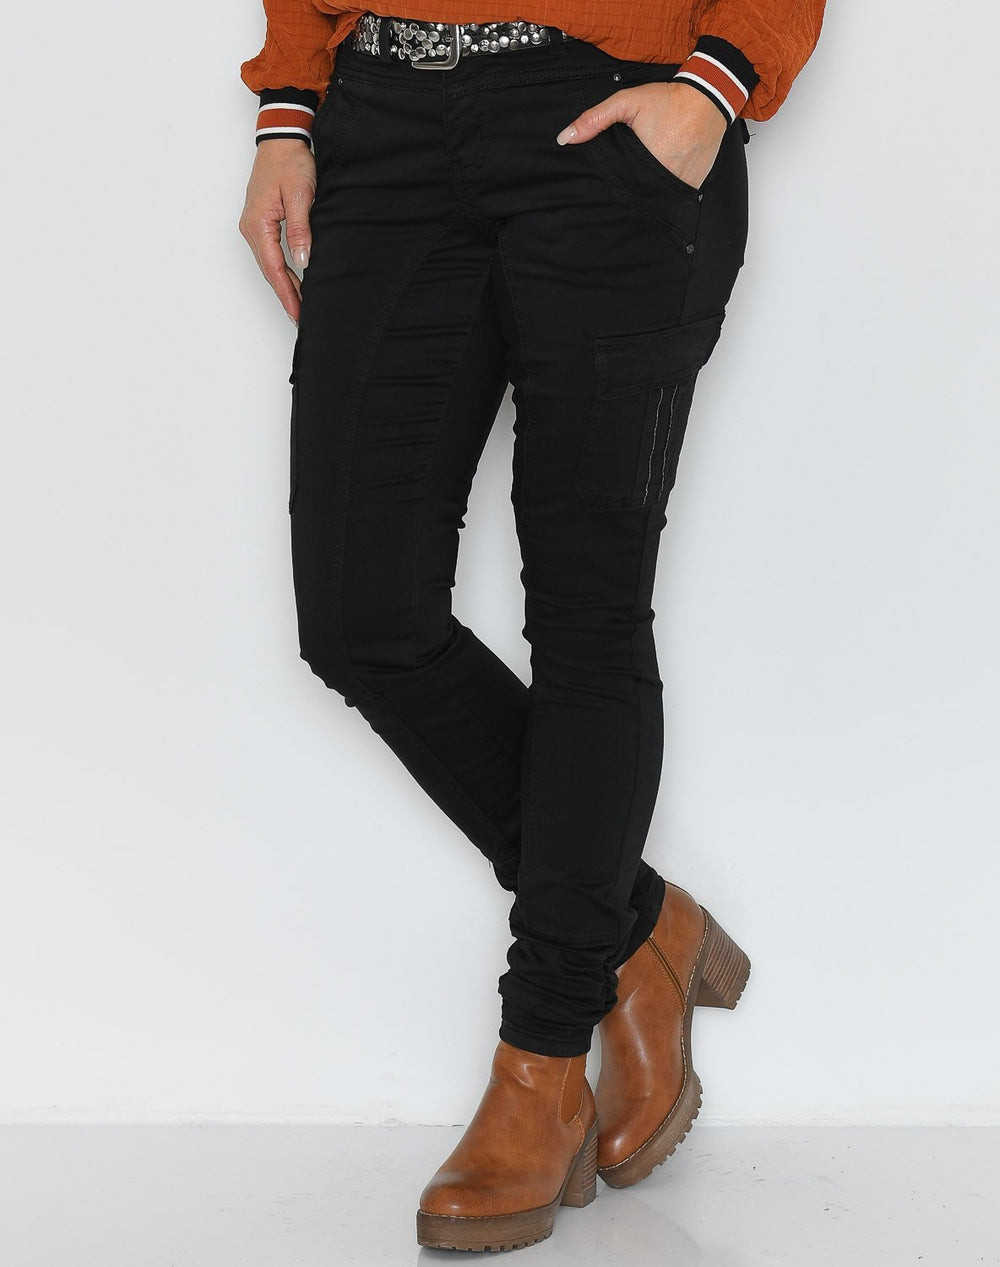 Cream LinaCR pants pitch black - Online-Mode